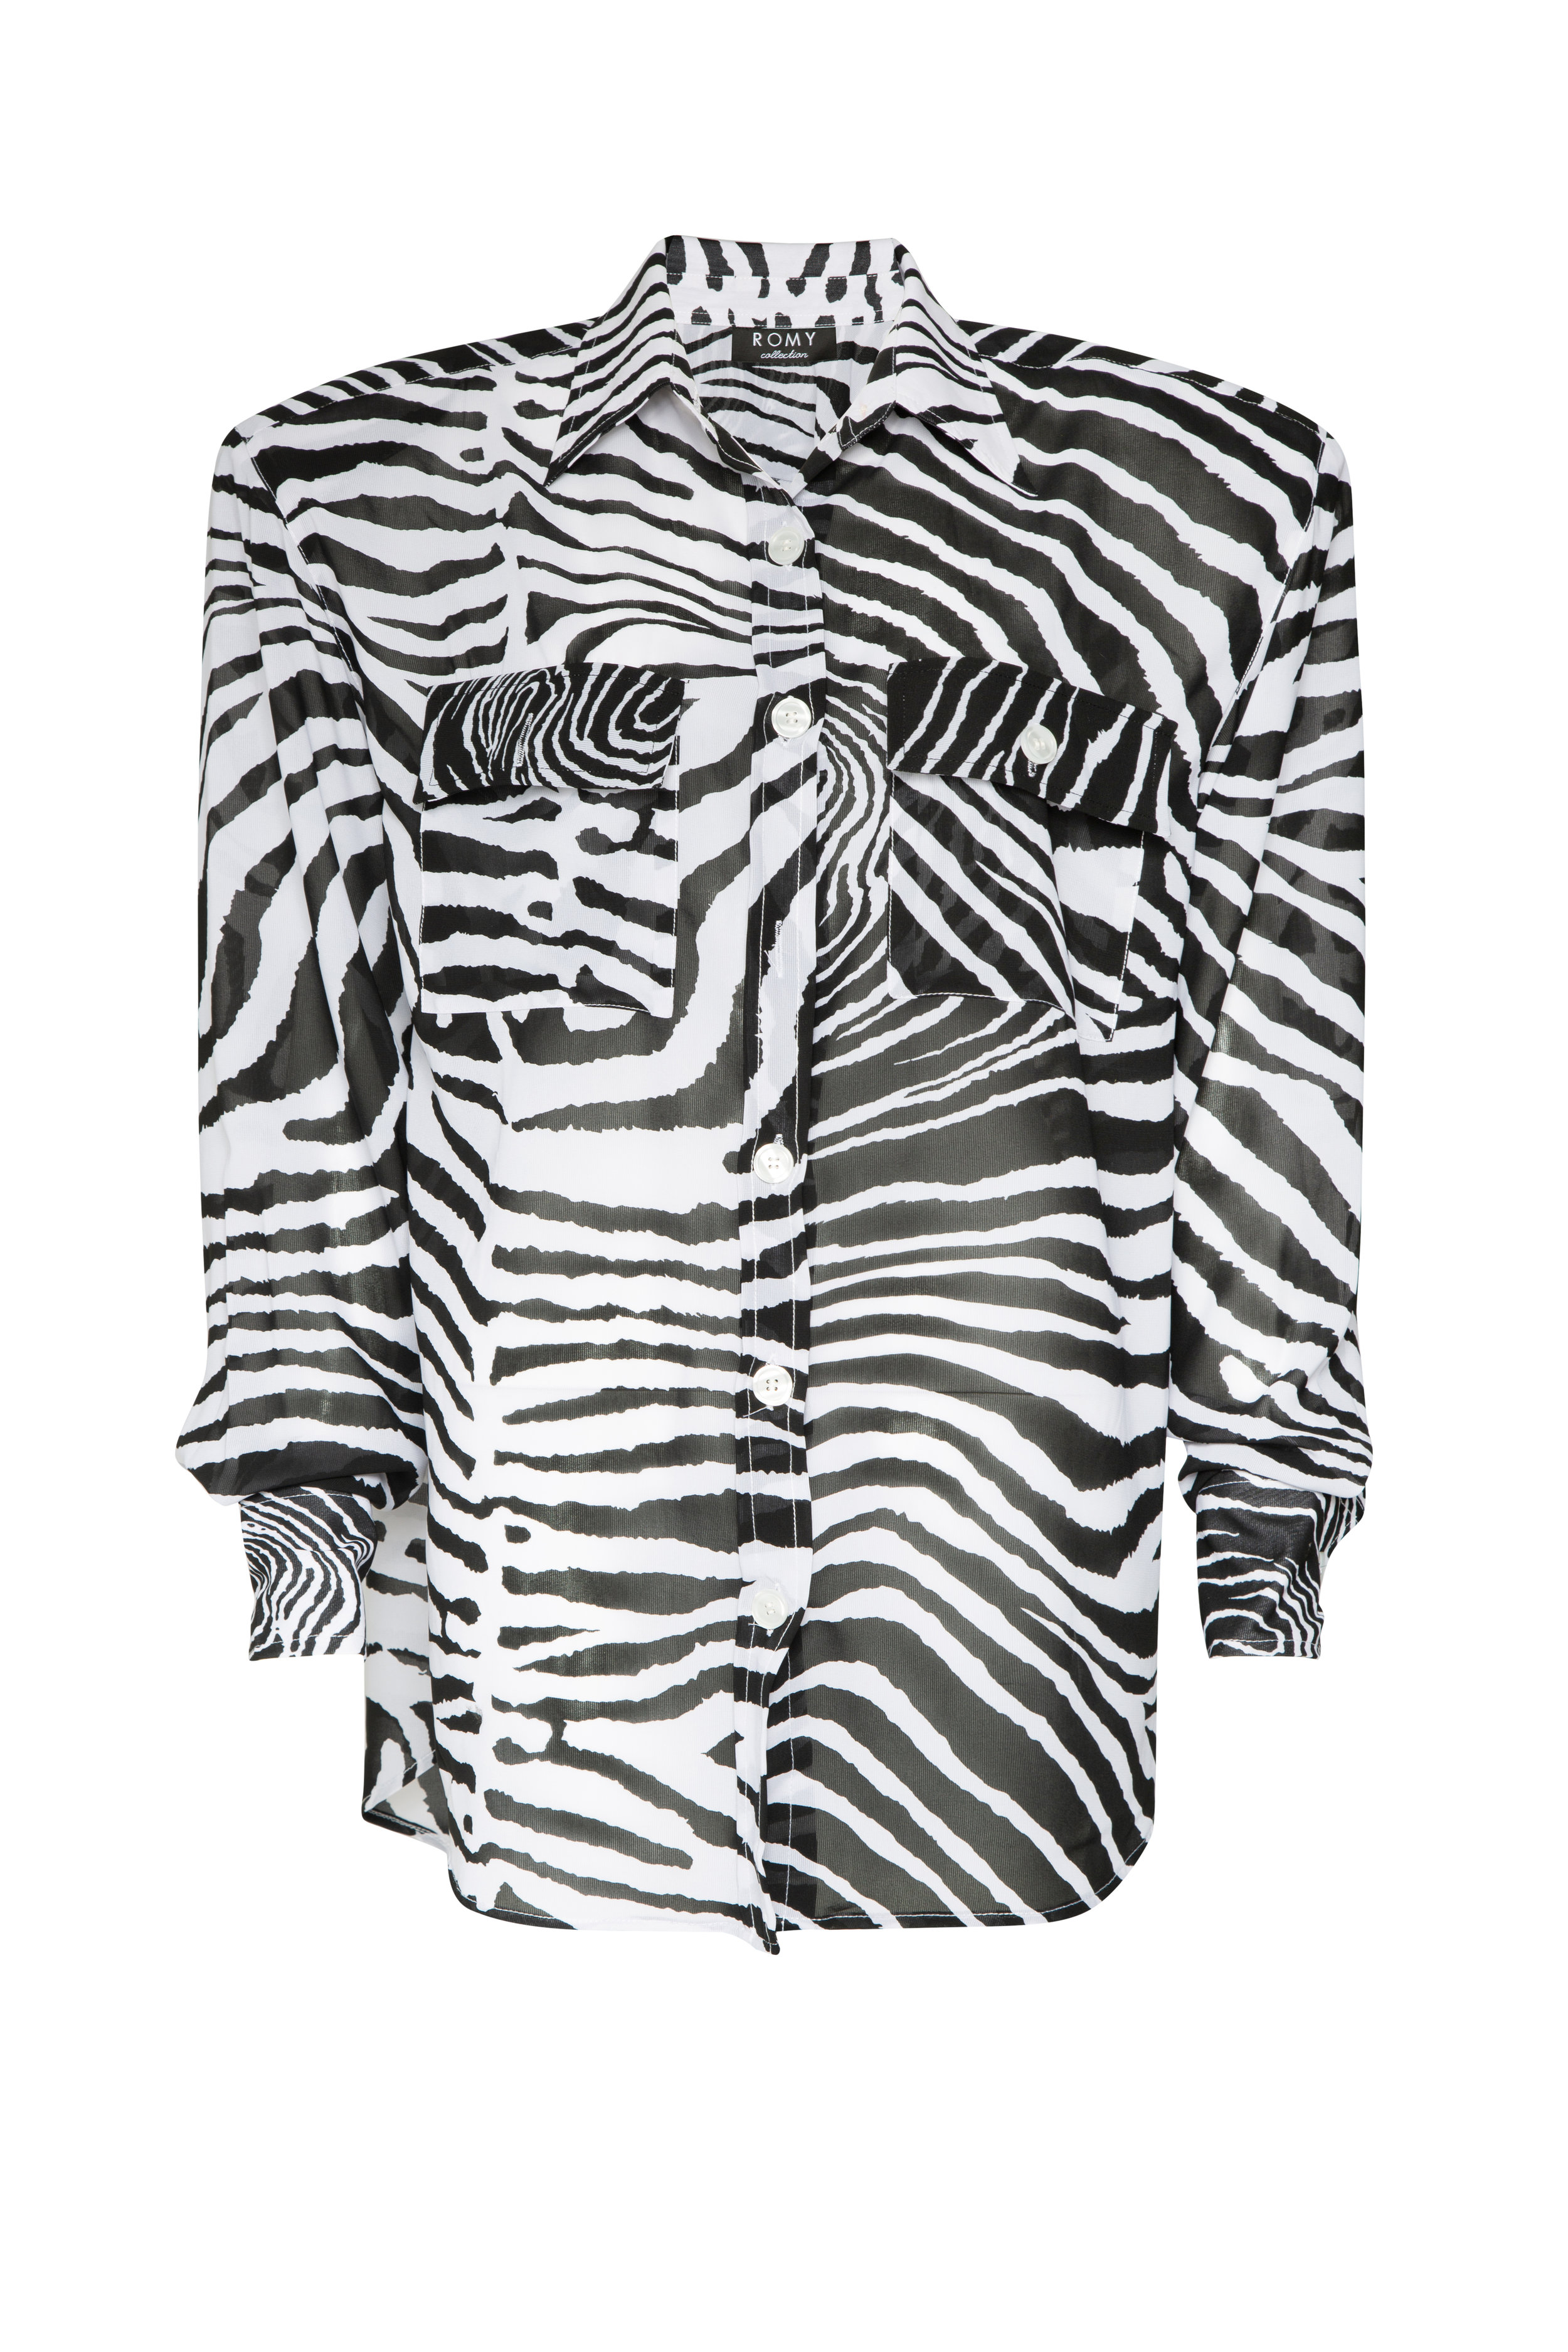 COMPLETE THE LOOK - Whitney Blouse USD 200